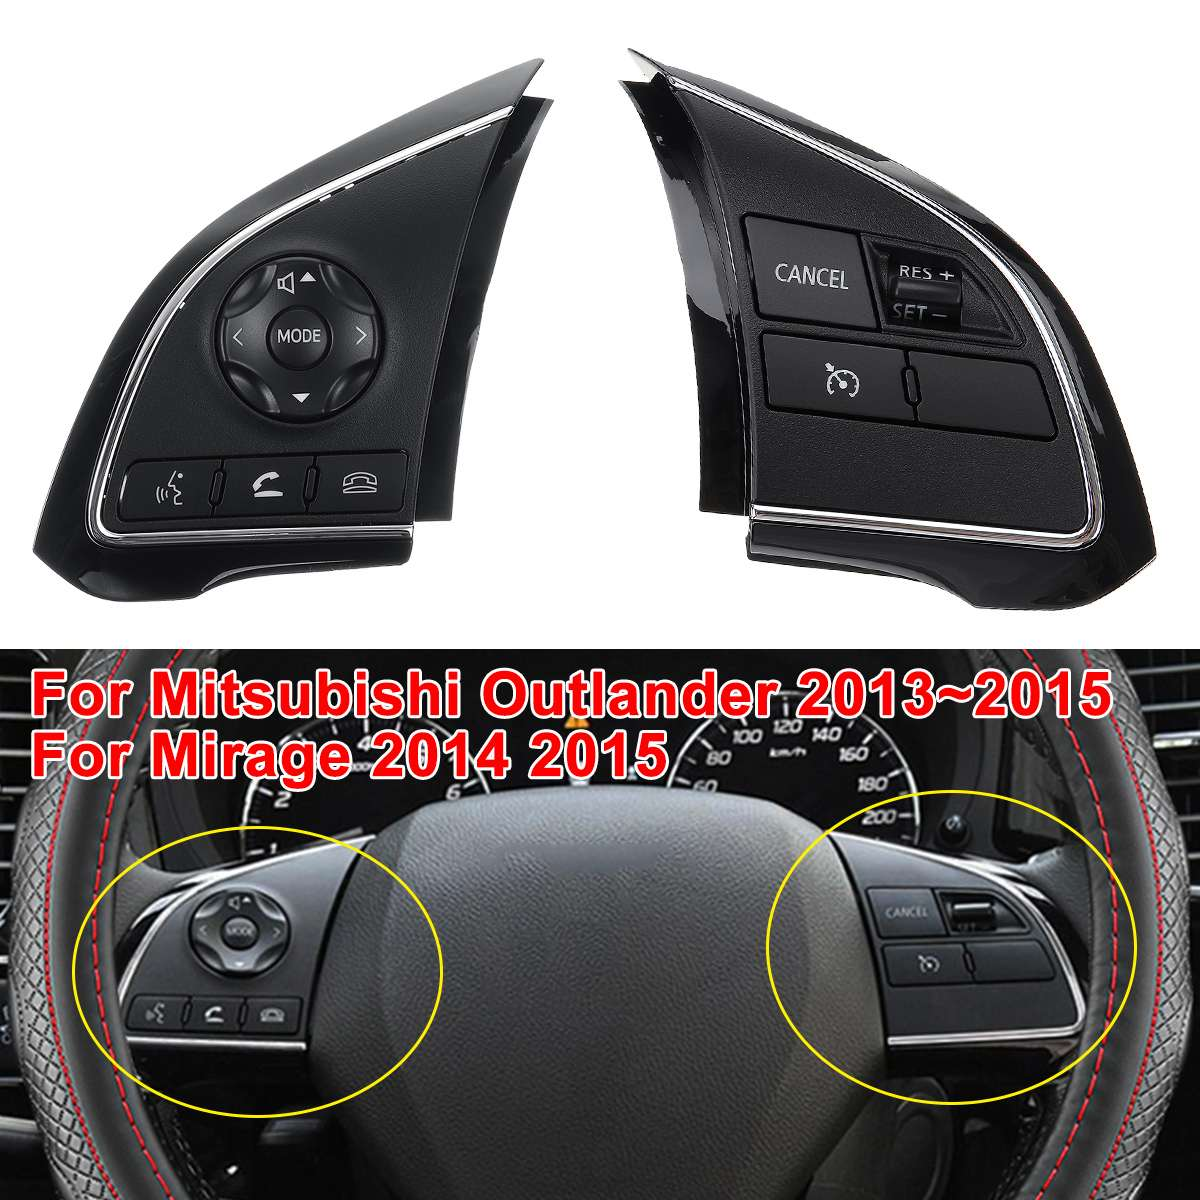 Cruise Control Steering Wheel Switch Right 8602A088 For Outlander Mirage 2014-15